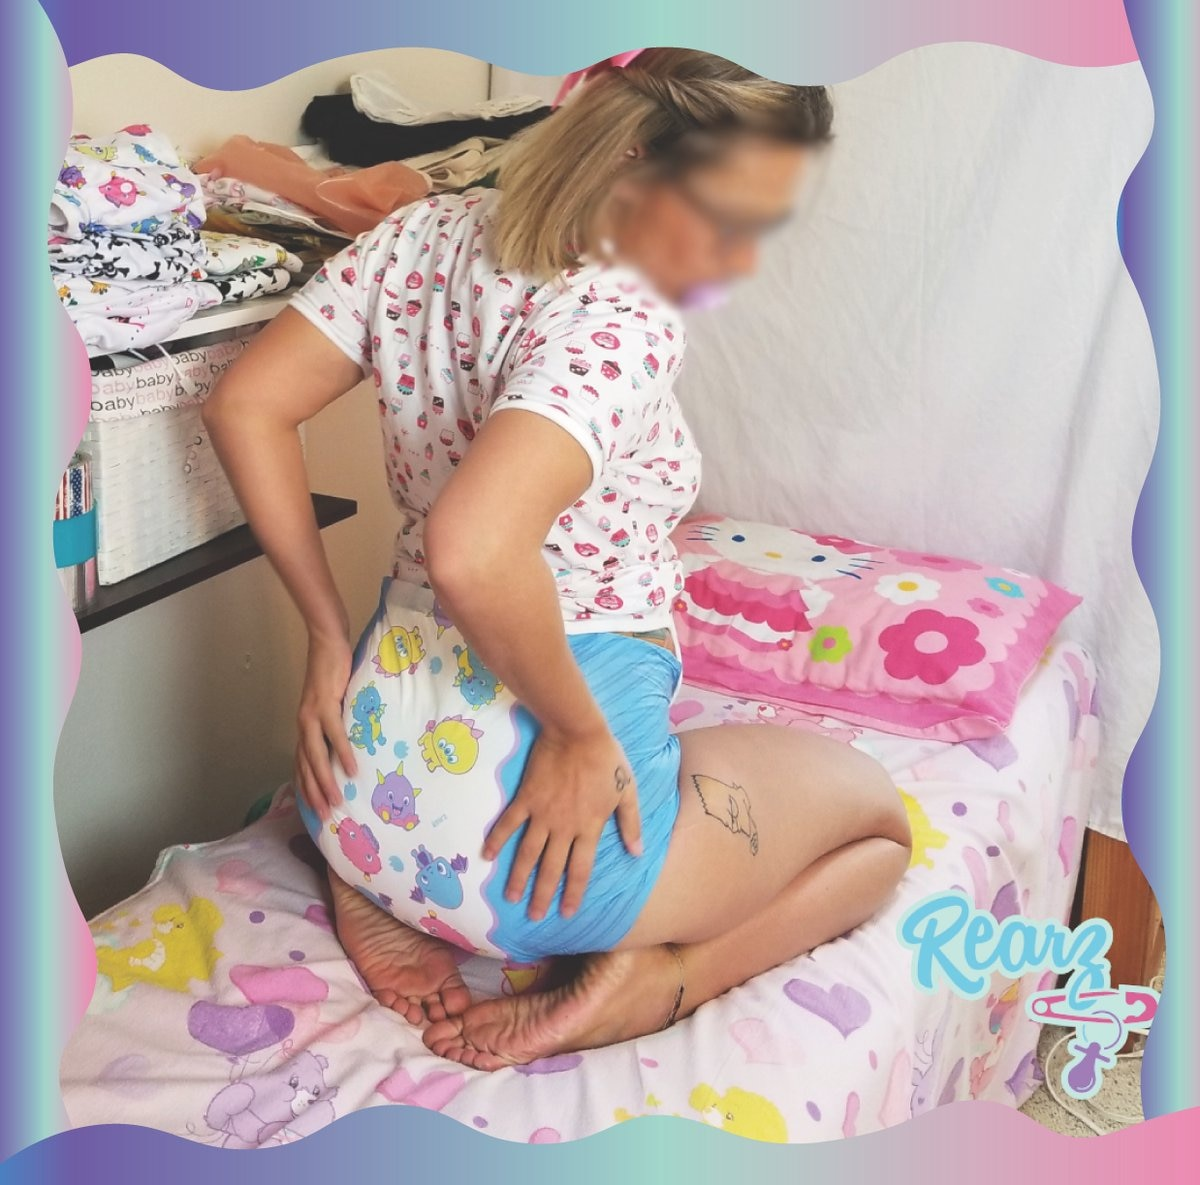 New Canadian ABDL Diaper with Scent Cute Adult Baby High Absorb Diaper DDLG Daddy Daughter Small Space Happy 8 PCS L/XL